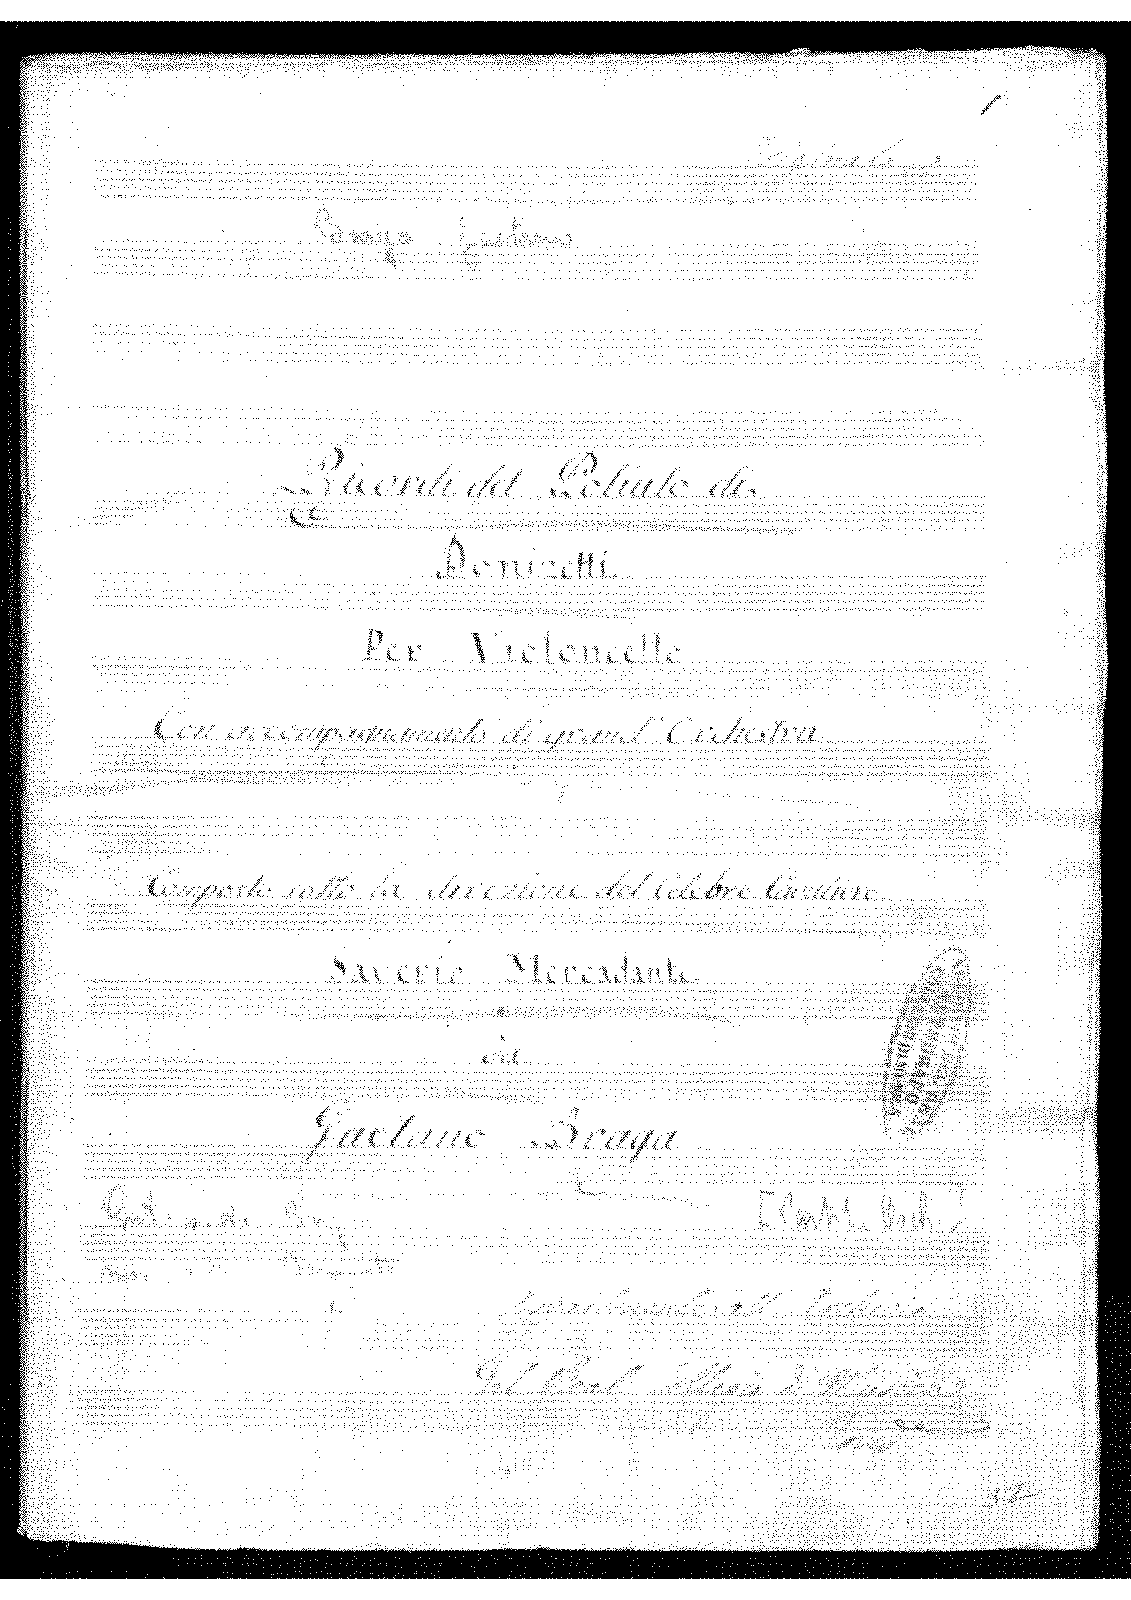 PMLP428548-Braga - Ricordi del Poliuto di Donizetti for Cello and Orchestra manuscript.pdf